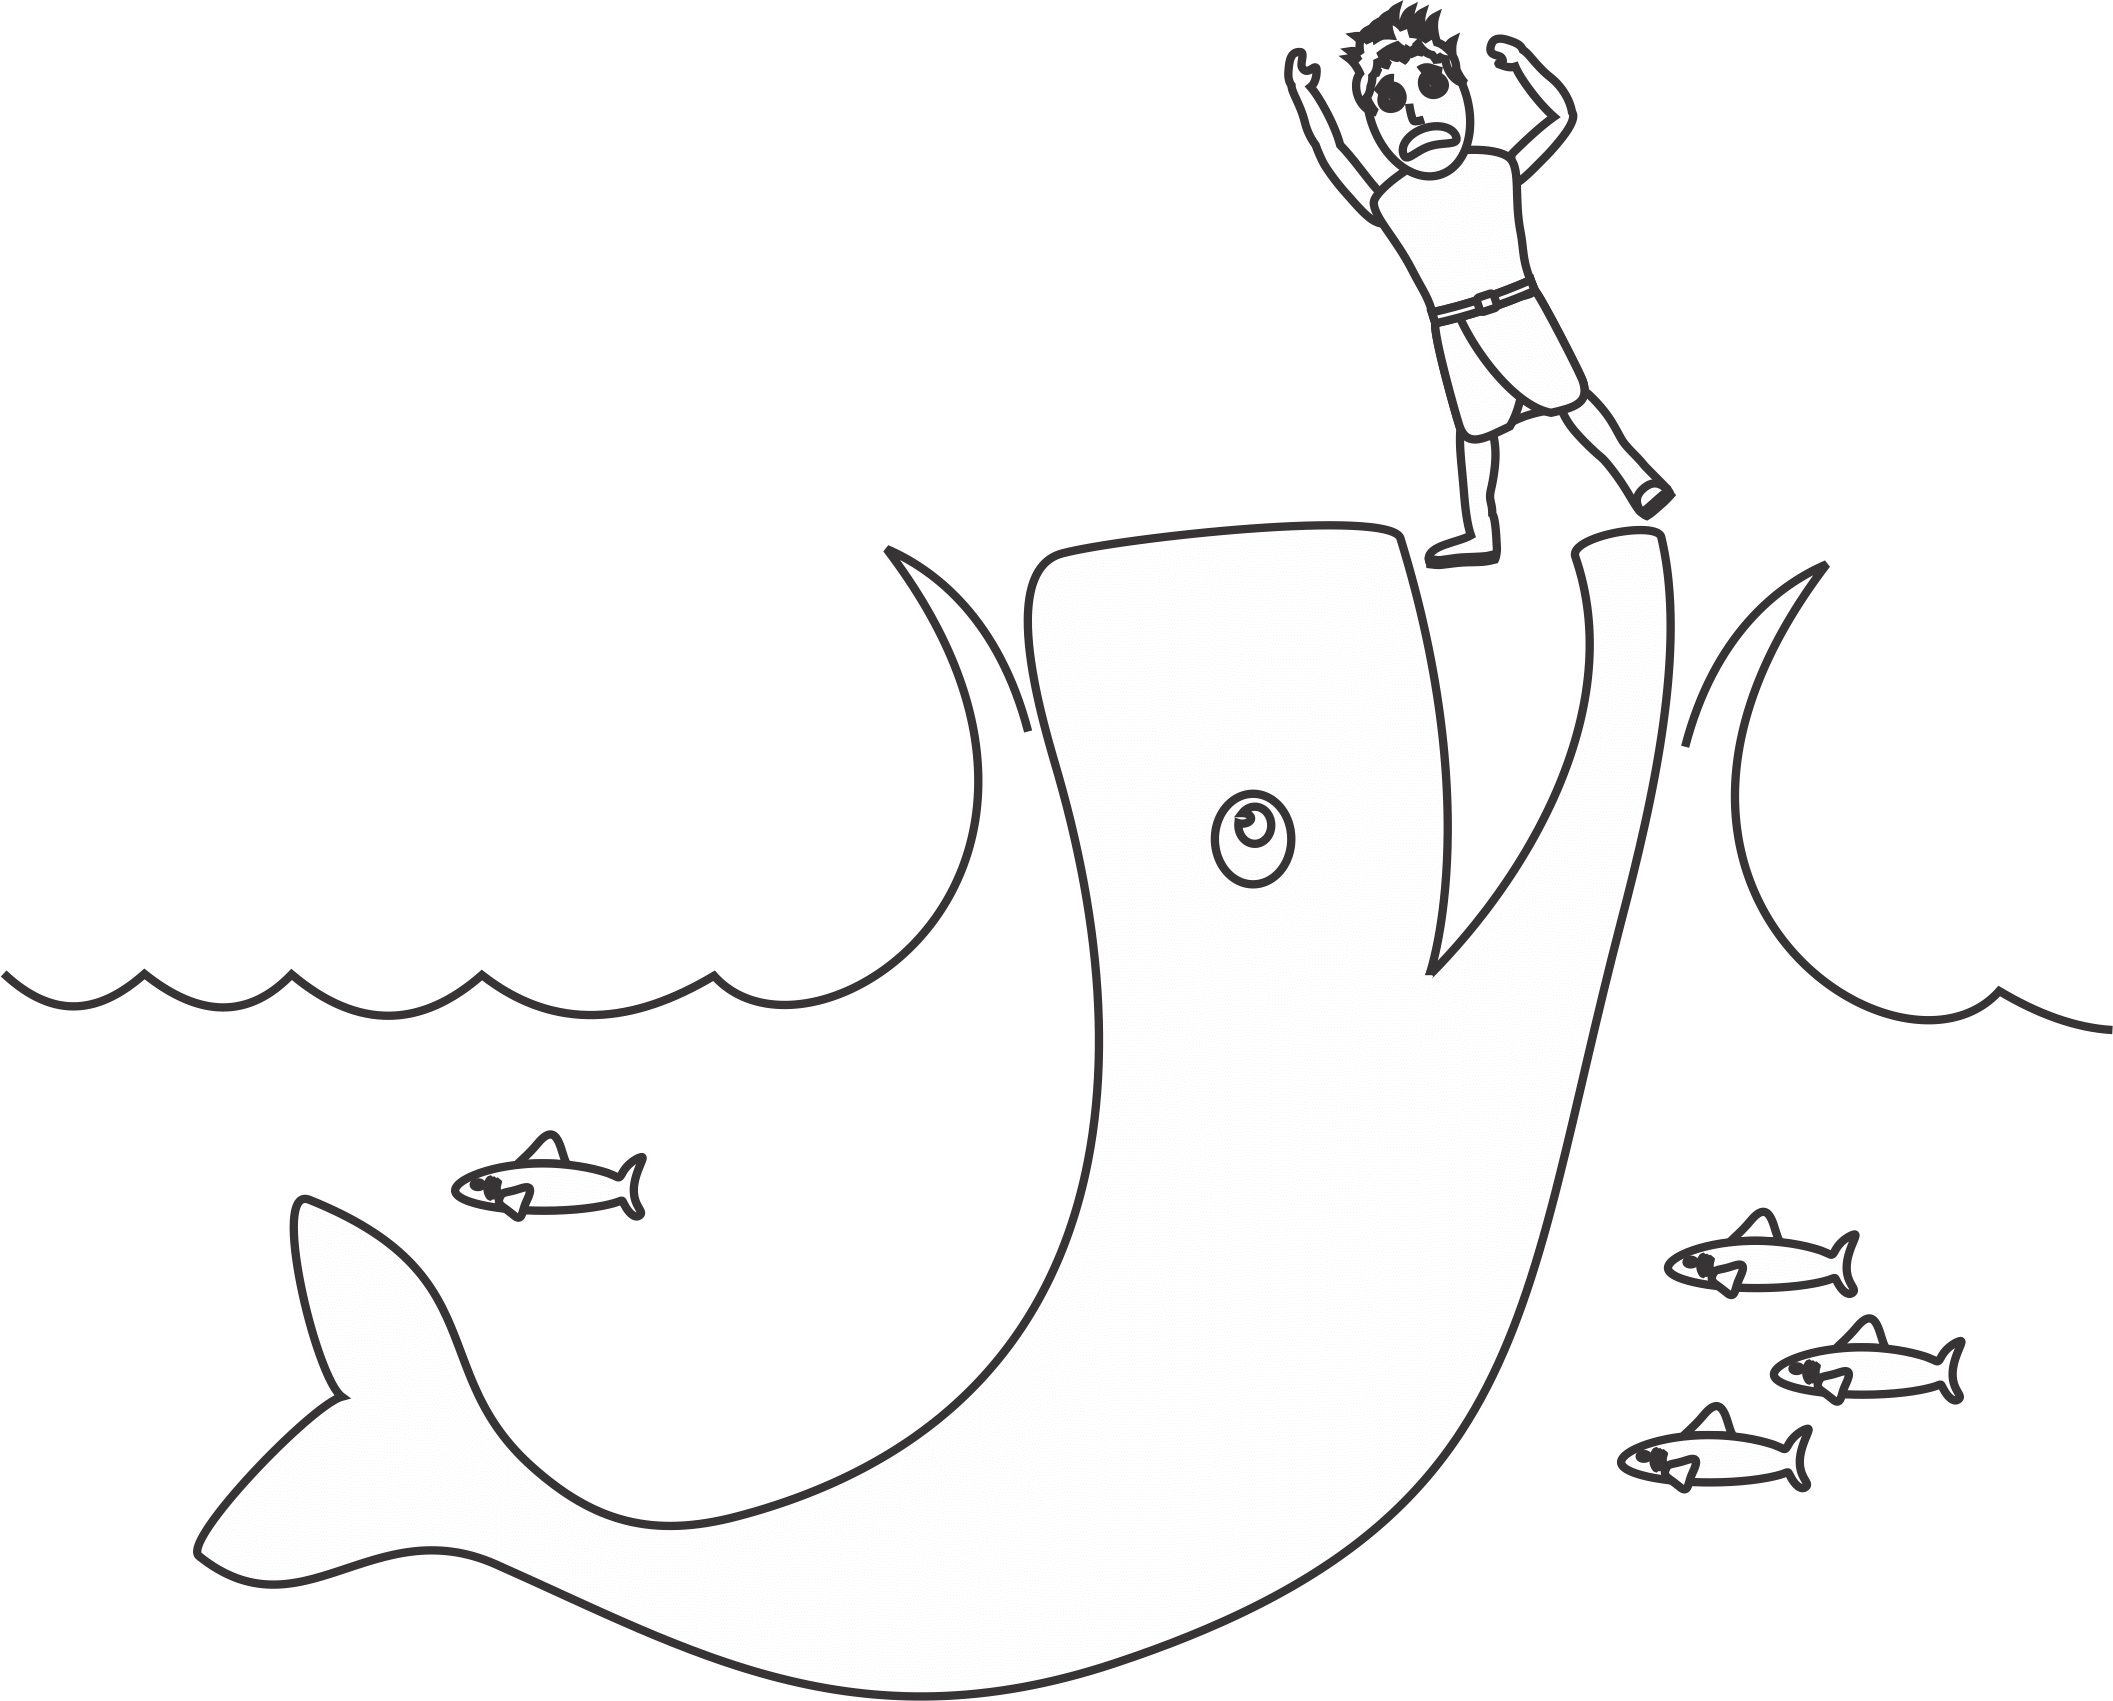 jonah and the whale coloring page for the sign of jonah lesson ... - Jonah Whale Coloring Page